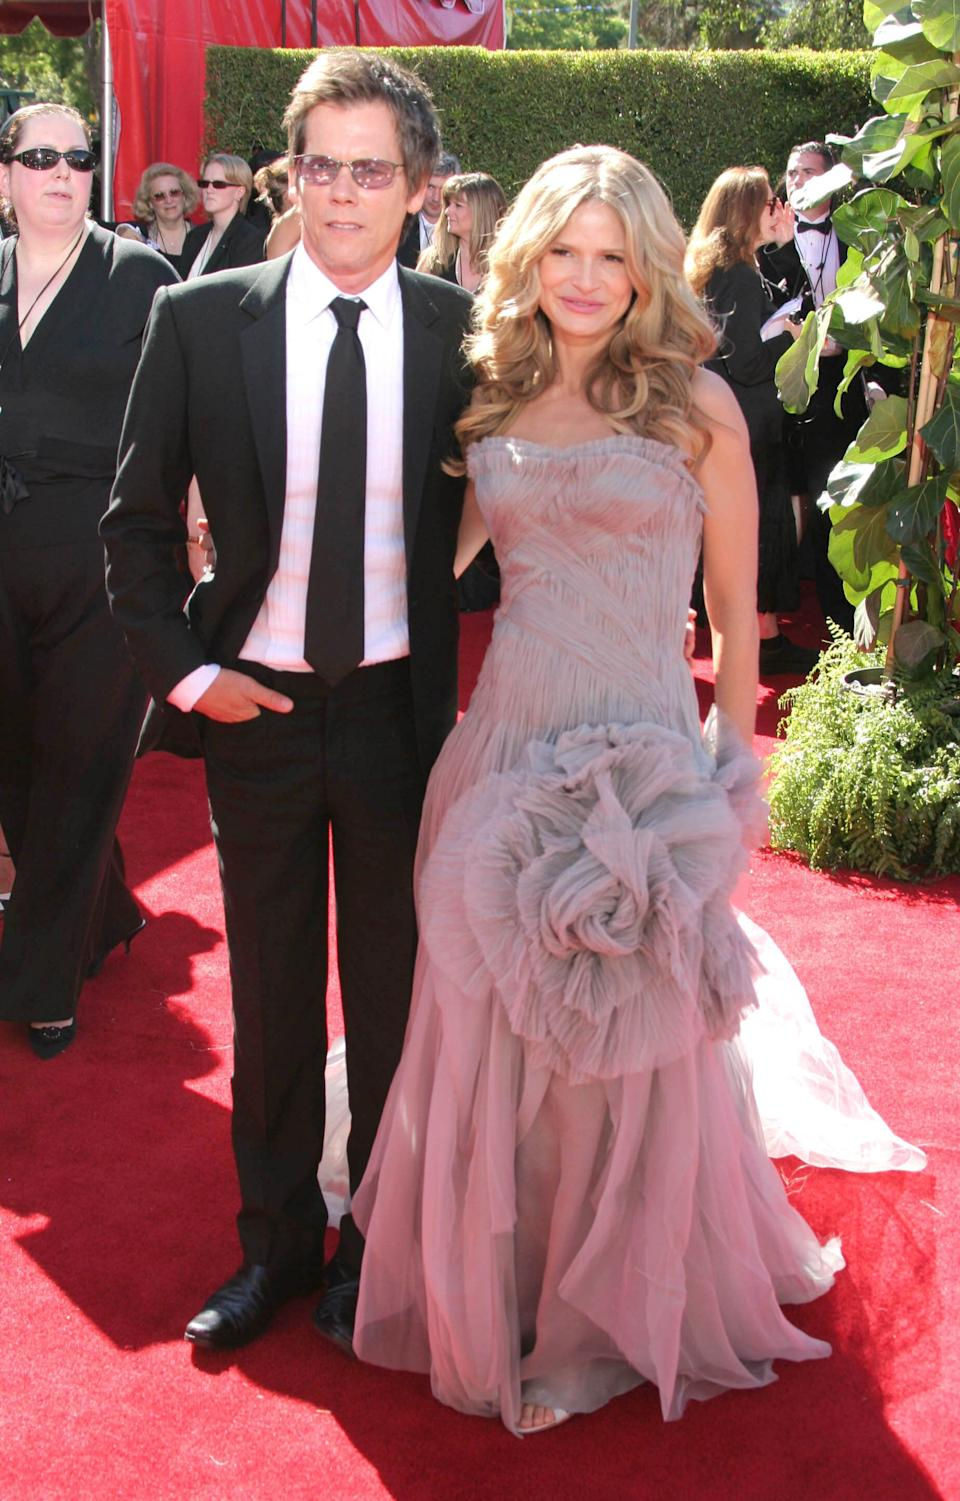 The couple at the Emmy Awards in Los Angeles.